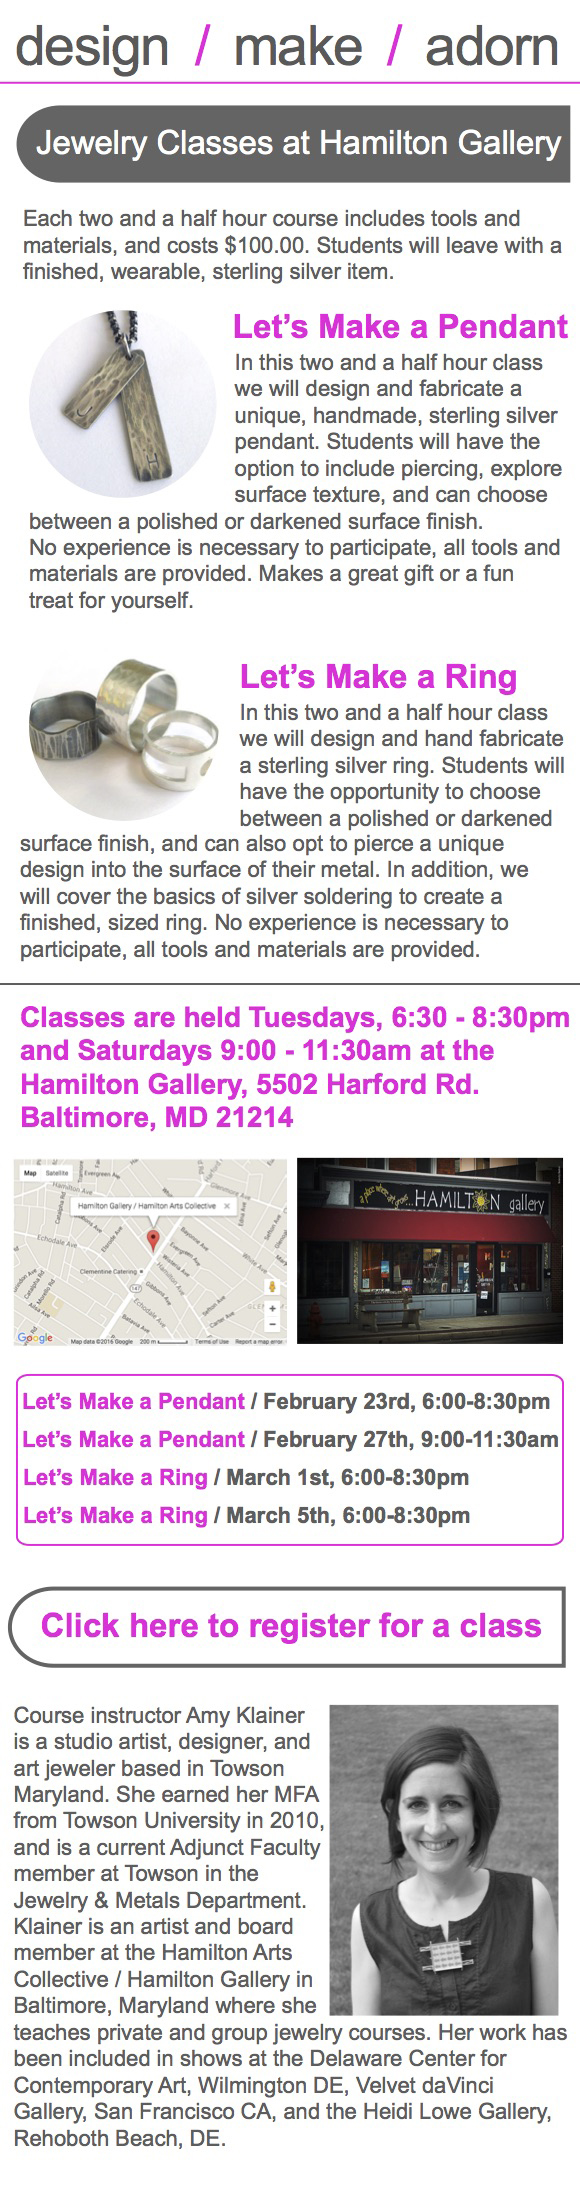 promotional brochure for jewelry classes at Hamilton Gallery